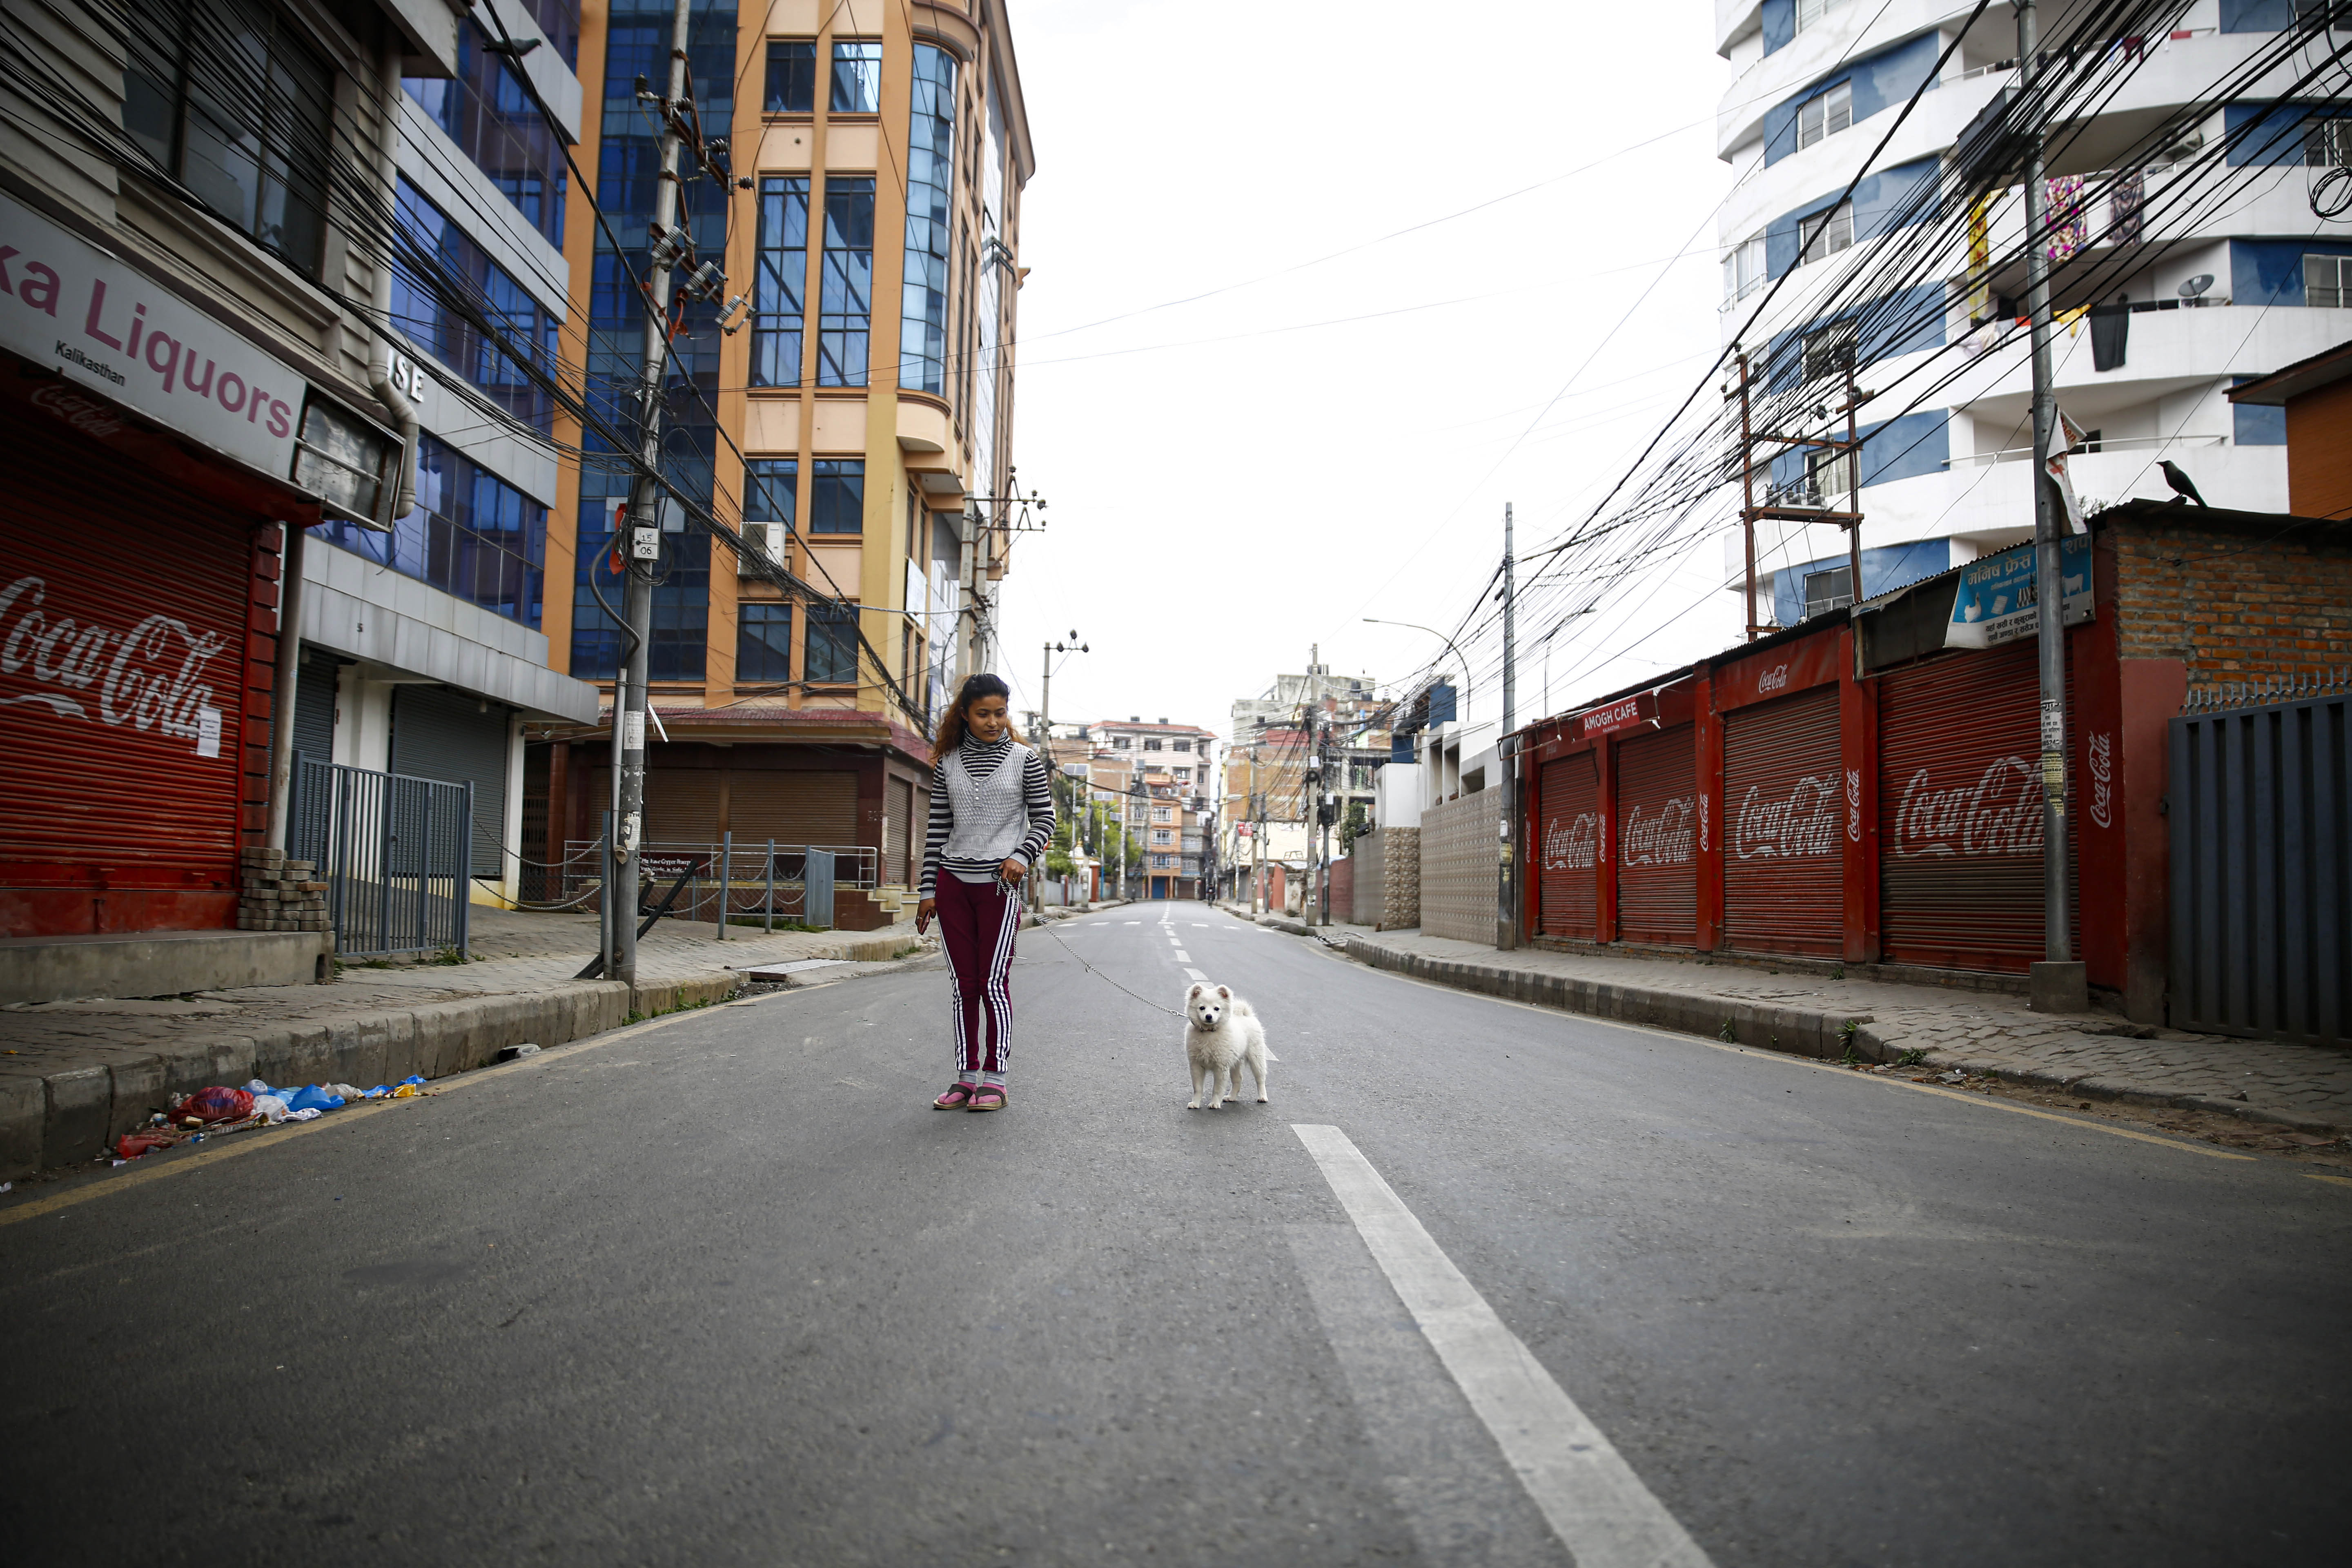 A woman and her dog walk on the empty road after the government imposed a nationwide lockdown for a week in an effort to control the possible spread of COVID-19 after Nepal confirmed the second case of a 19-year-old Nepali student, who had returned from France via Qatar, in Kathmandu, on Tuesday, March 24, 2020. Photo/Skanda Gautam/THT